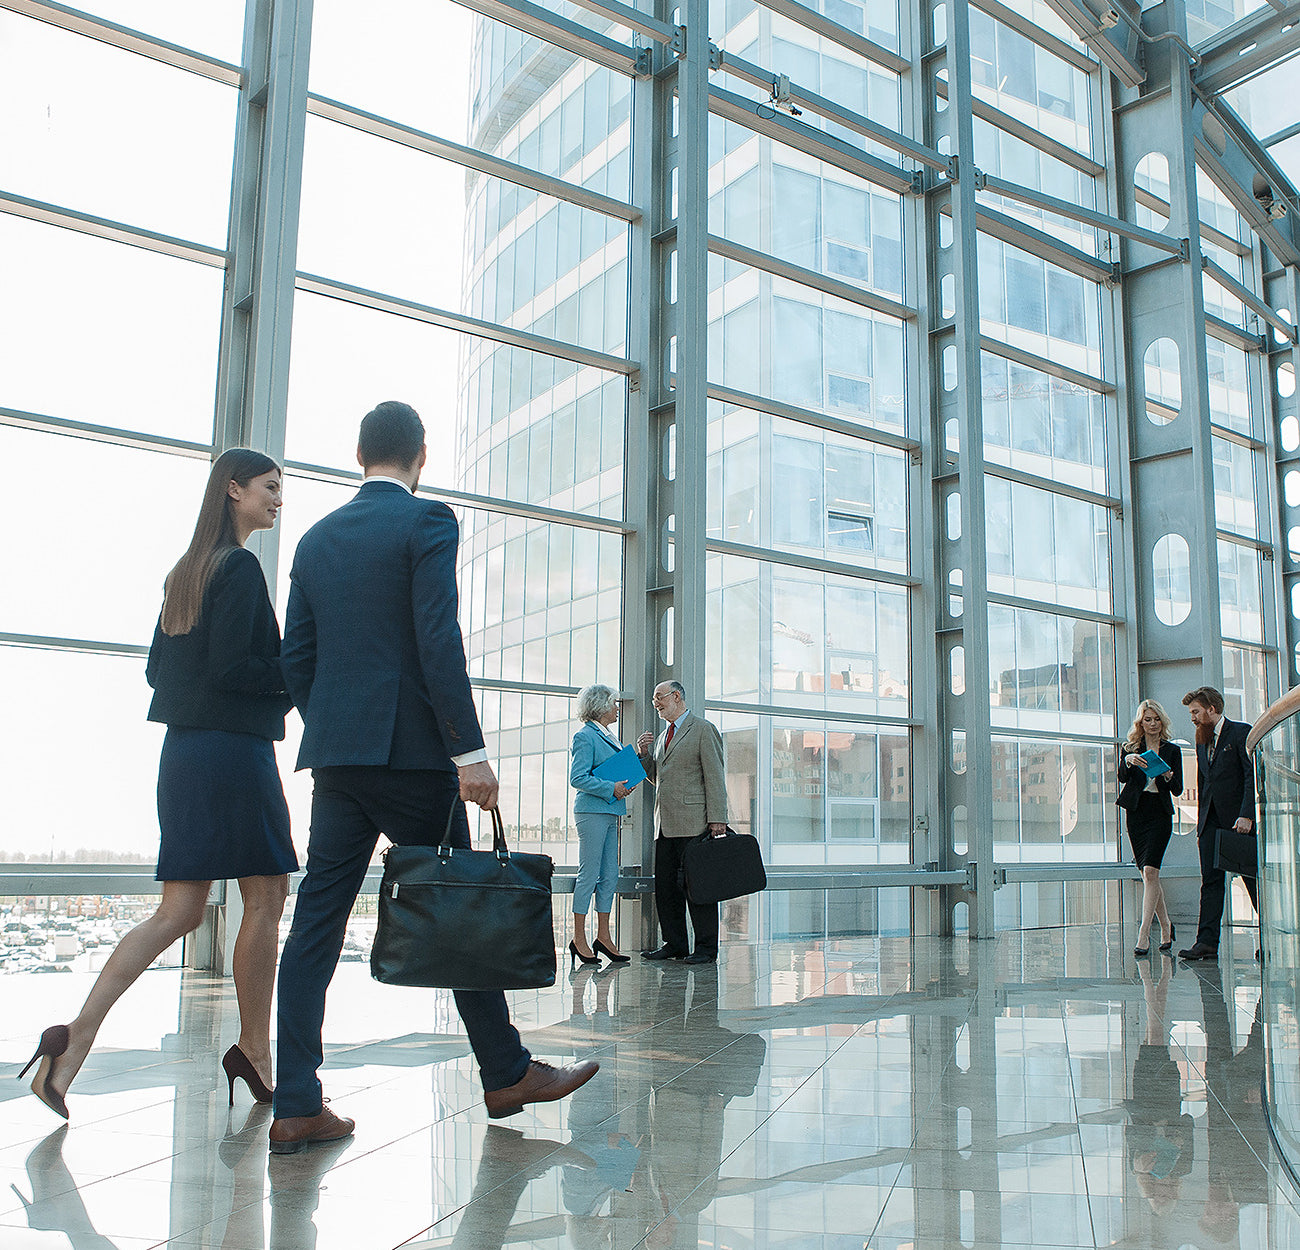 Business workers walking around the office